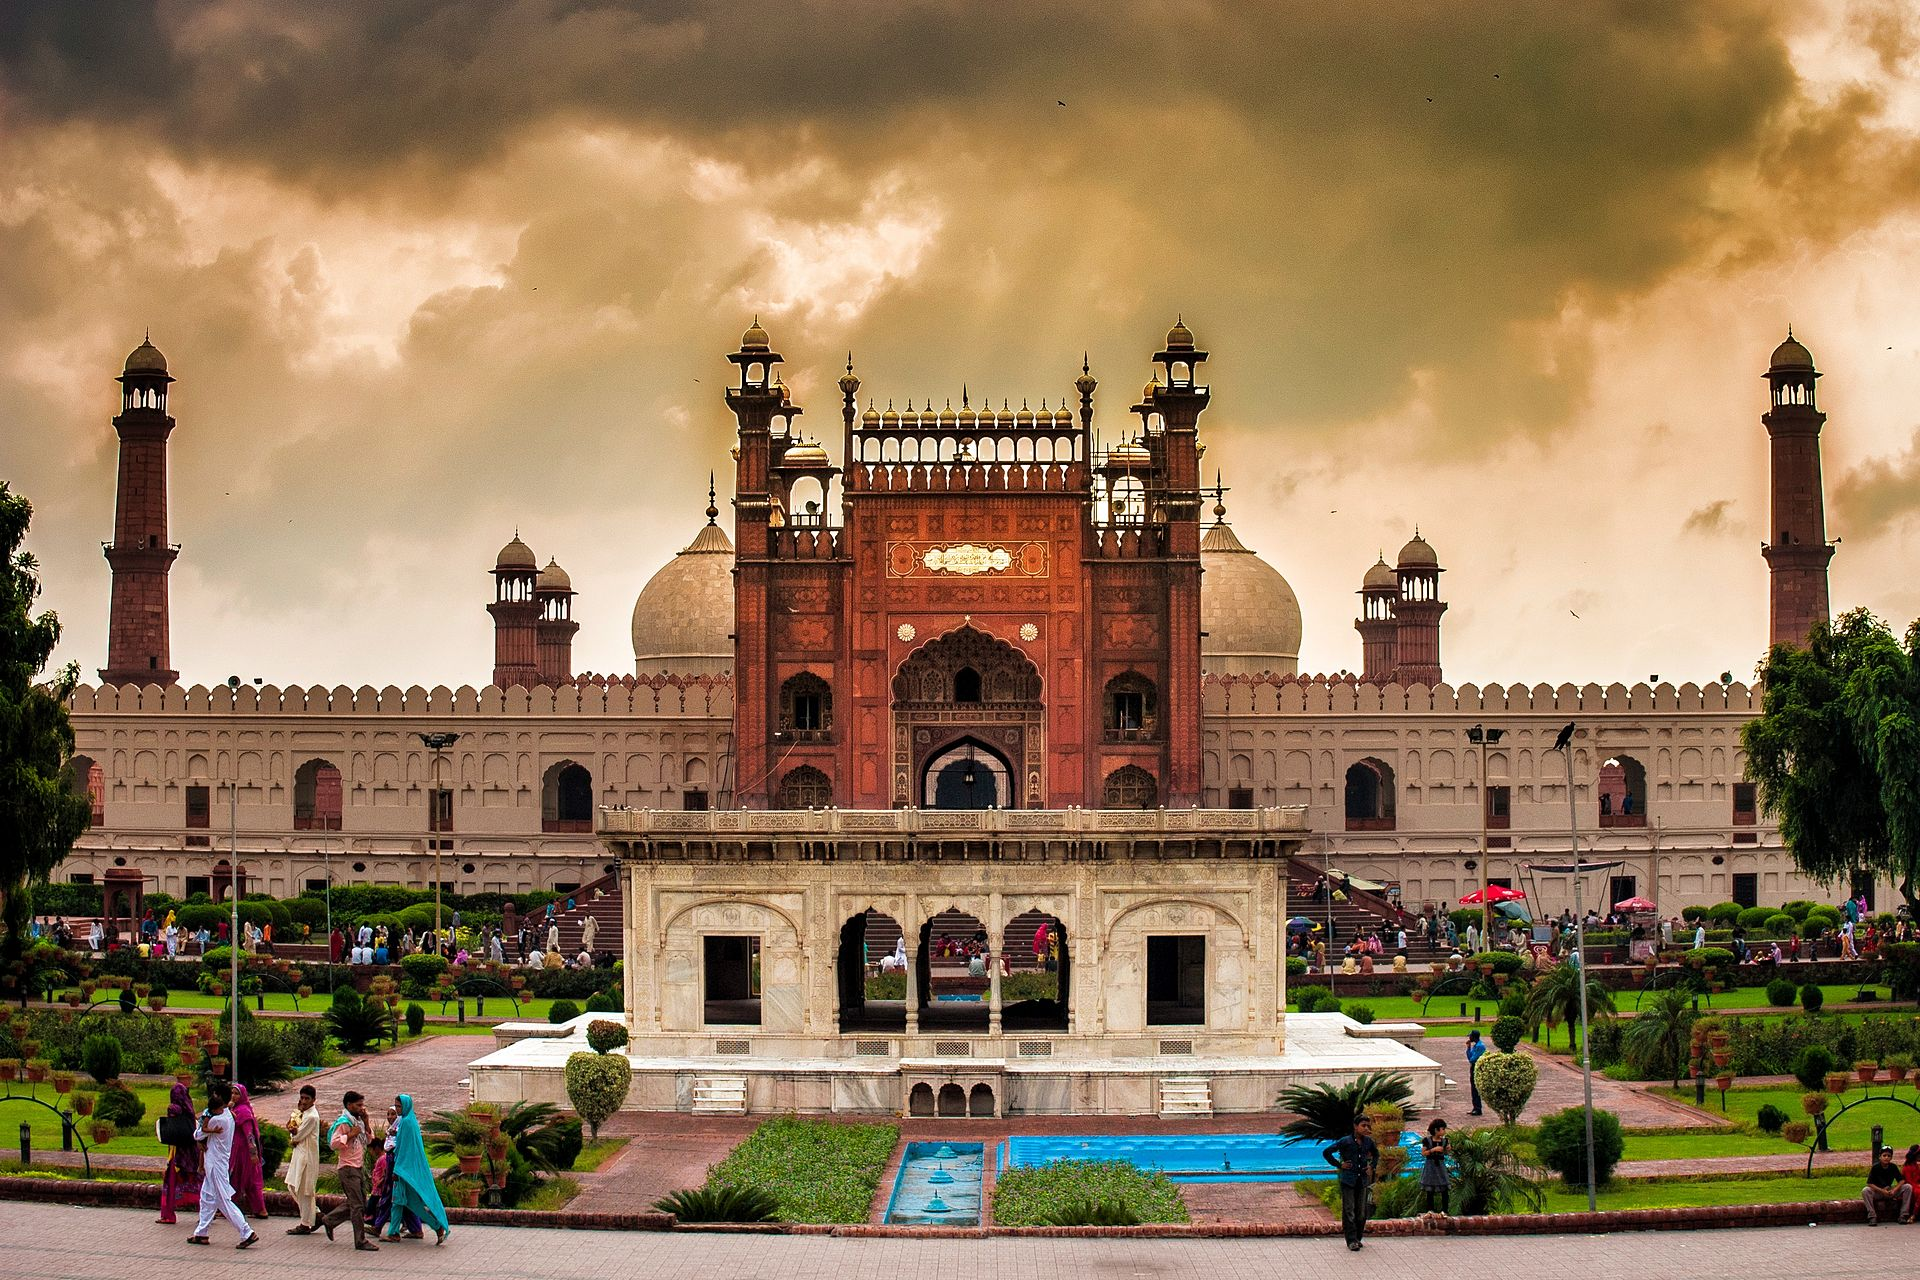 _1920px-Front_gate_of_badshahi_mosque_1298878111282547208.jpg